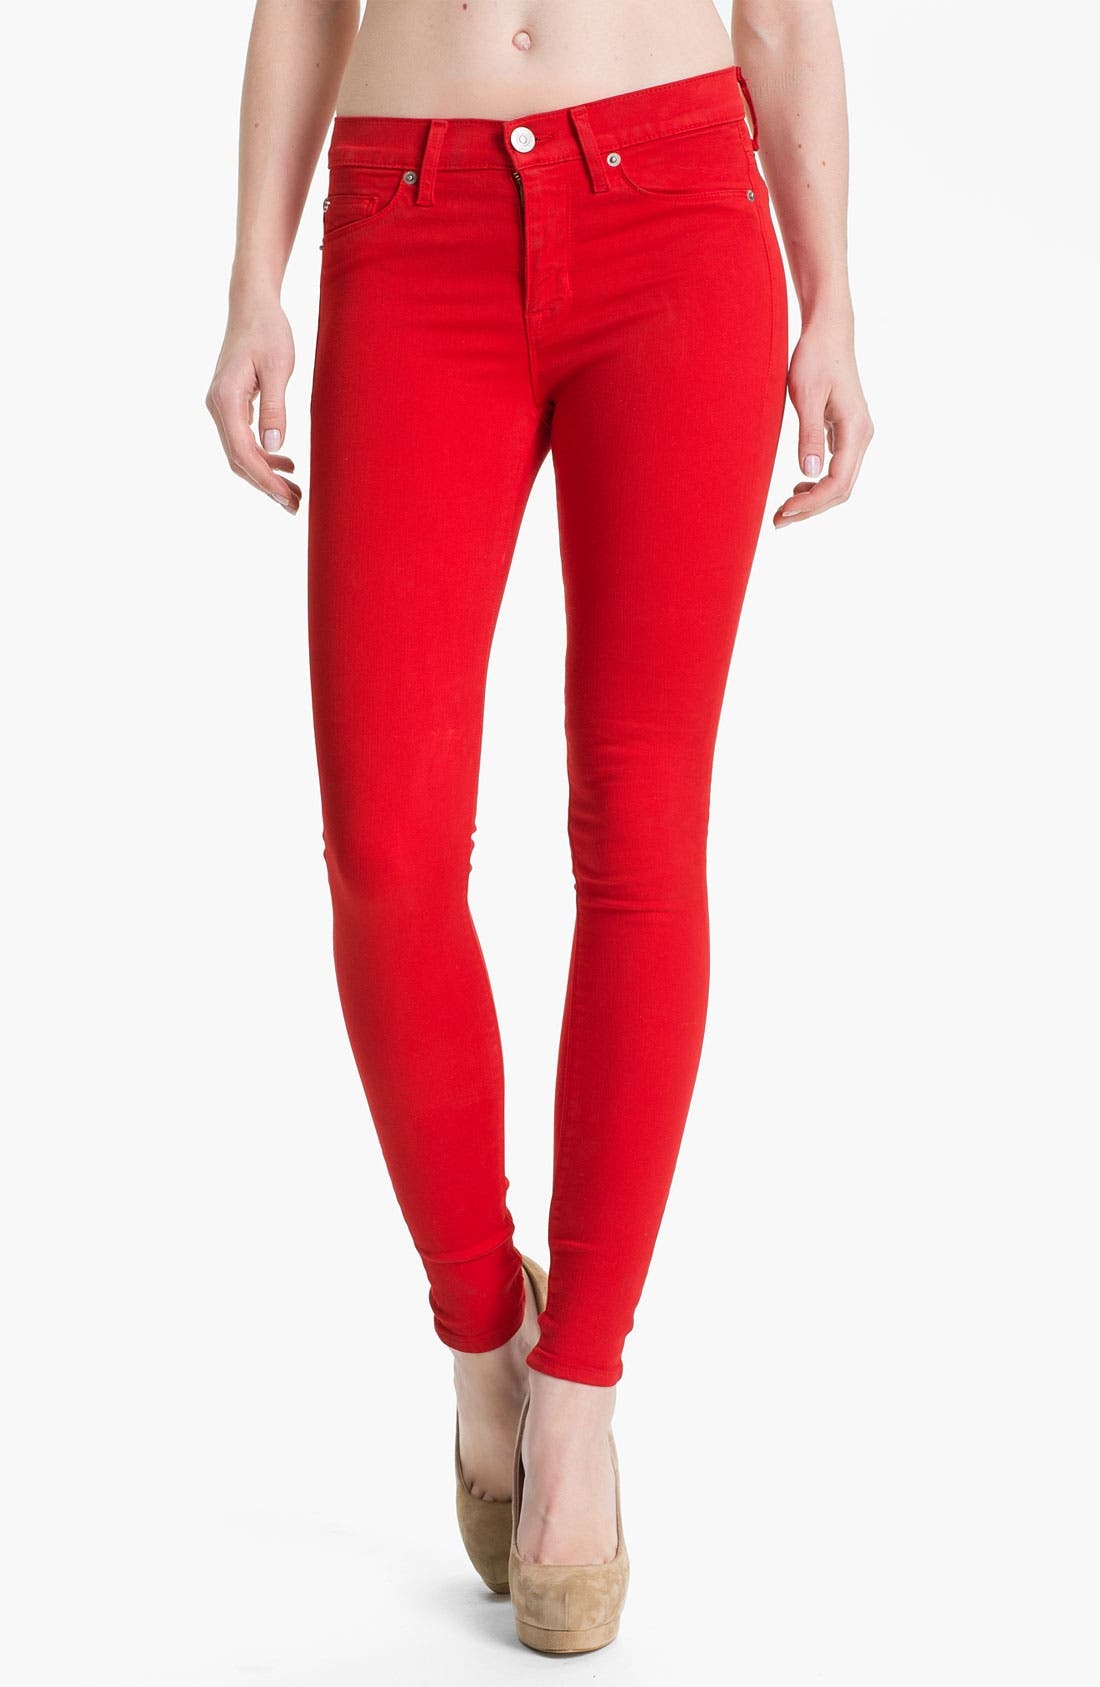 Alternate Image 1 Selected - Hudson Jeans 'Nico' Skinny Overdyed Jeans (Red)